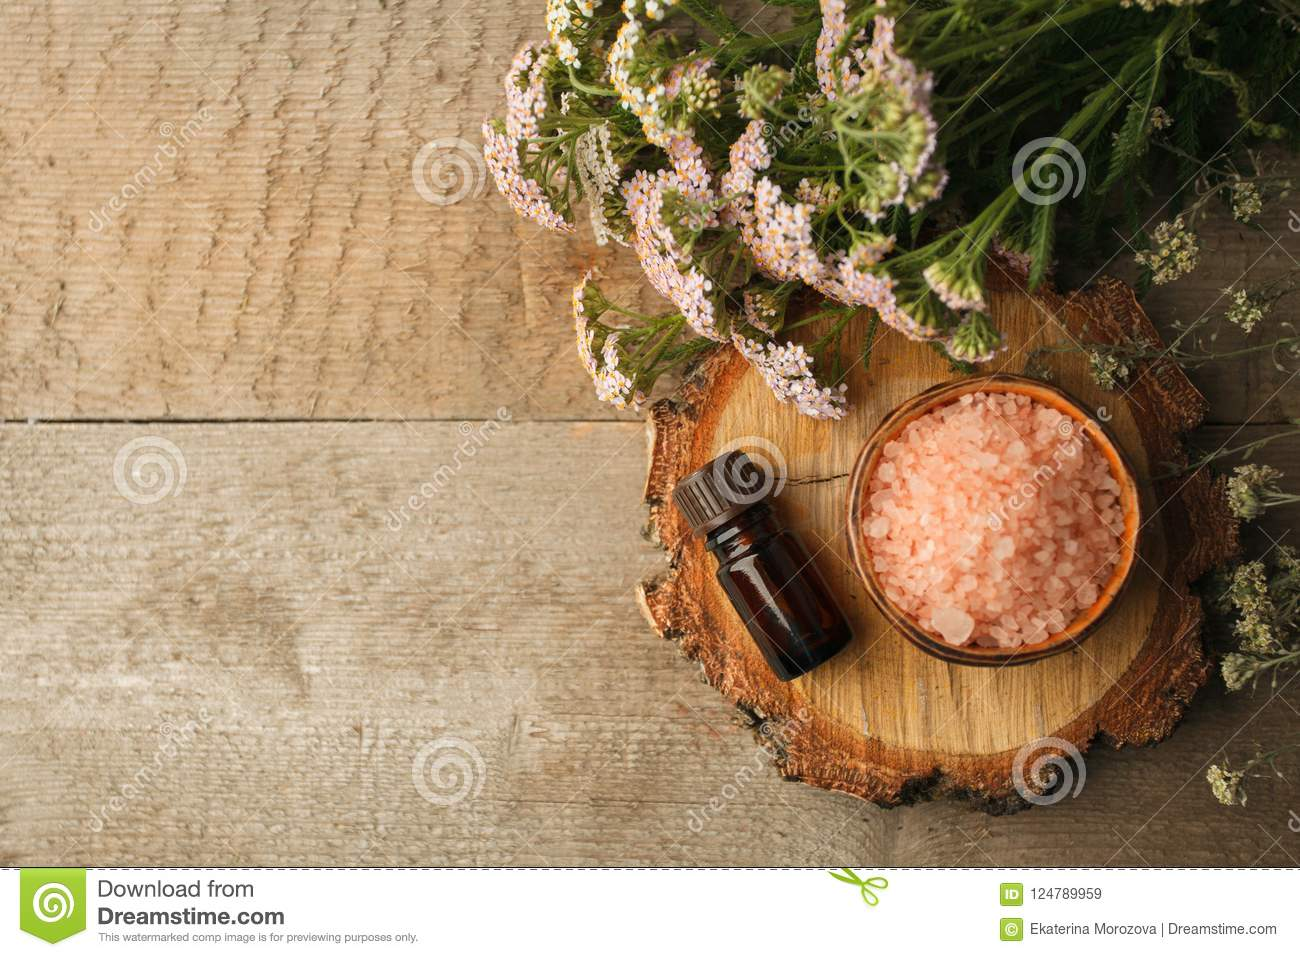 Spa composition on wooden table. Natural aroma oil, sea salt on rustic wooden background. Healthy skin care. SPA concept. Top view